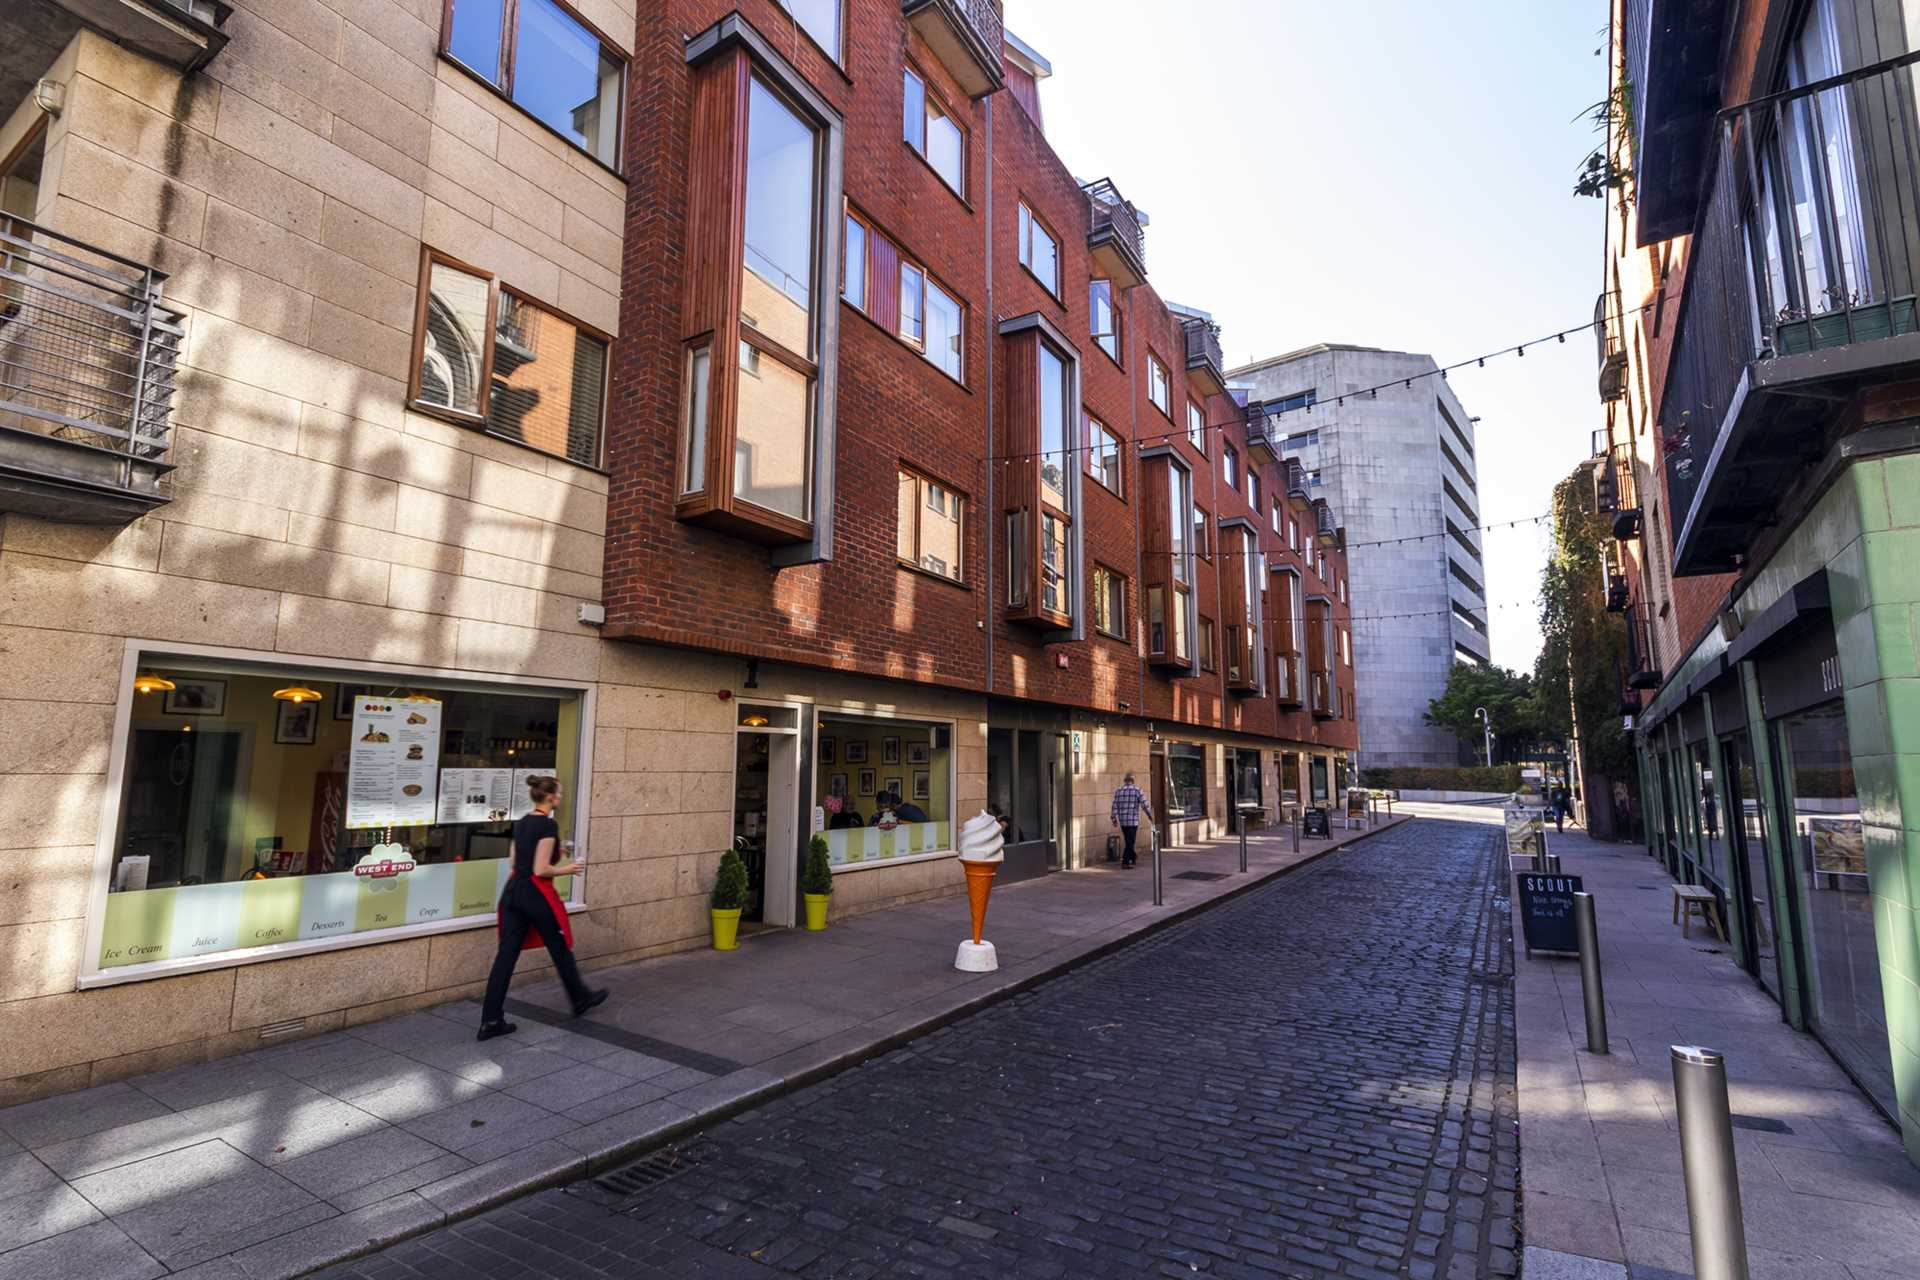 20 Scarlet Row, Essex Street West, Temple Bar, Dublin 2, Image 11